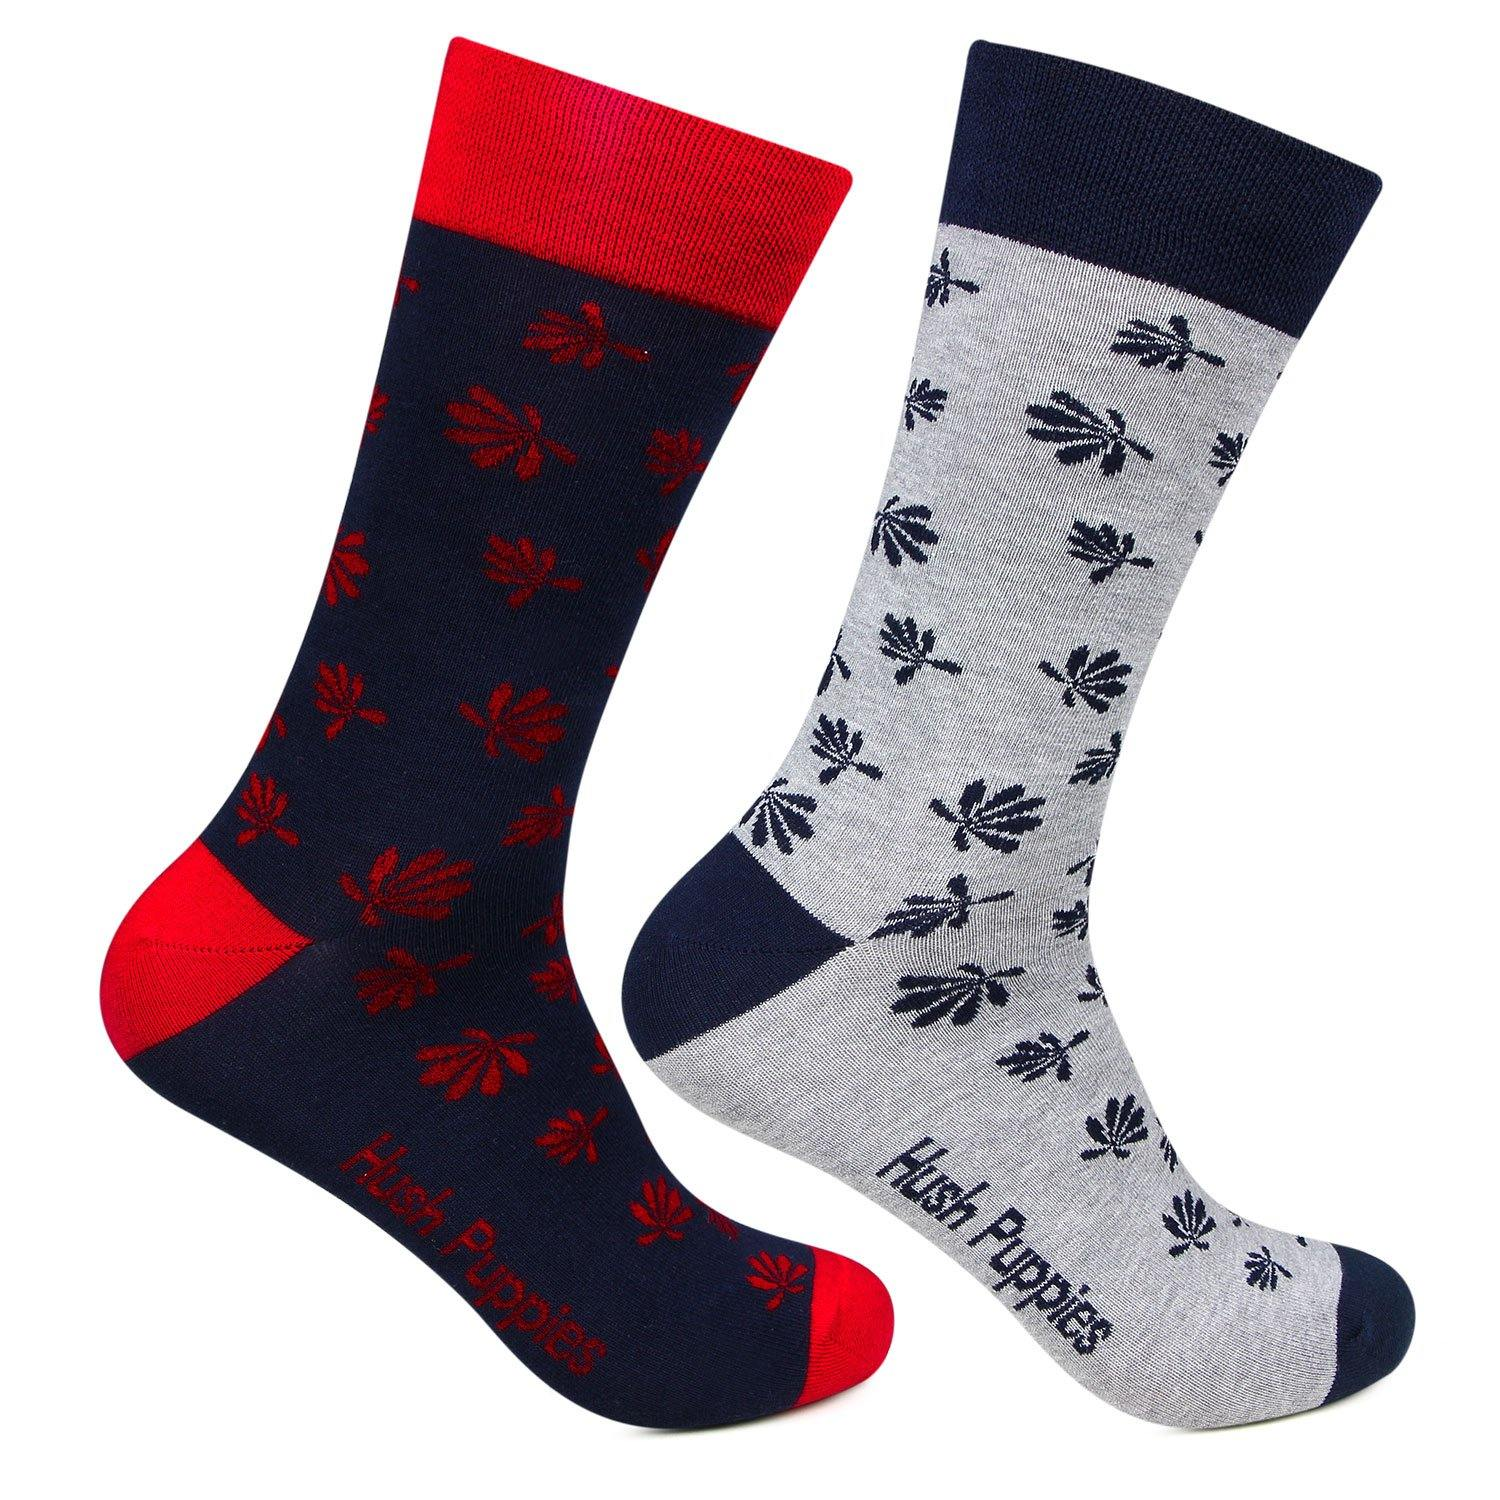 Hush Puppies Men's Multicoloured Floral Design Crew Socks - Pack of 2